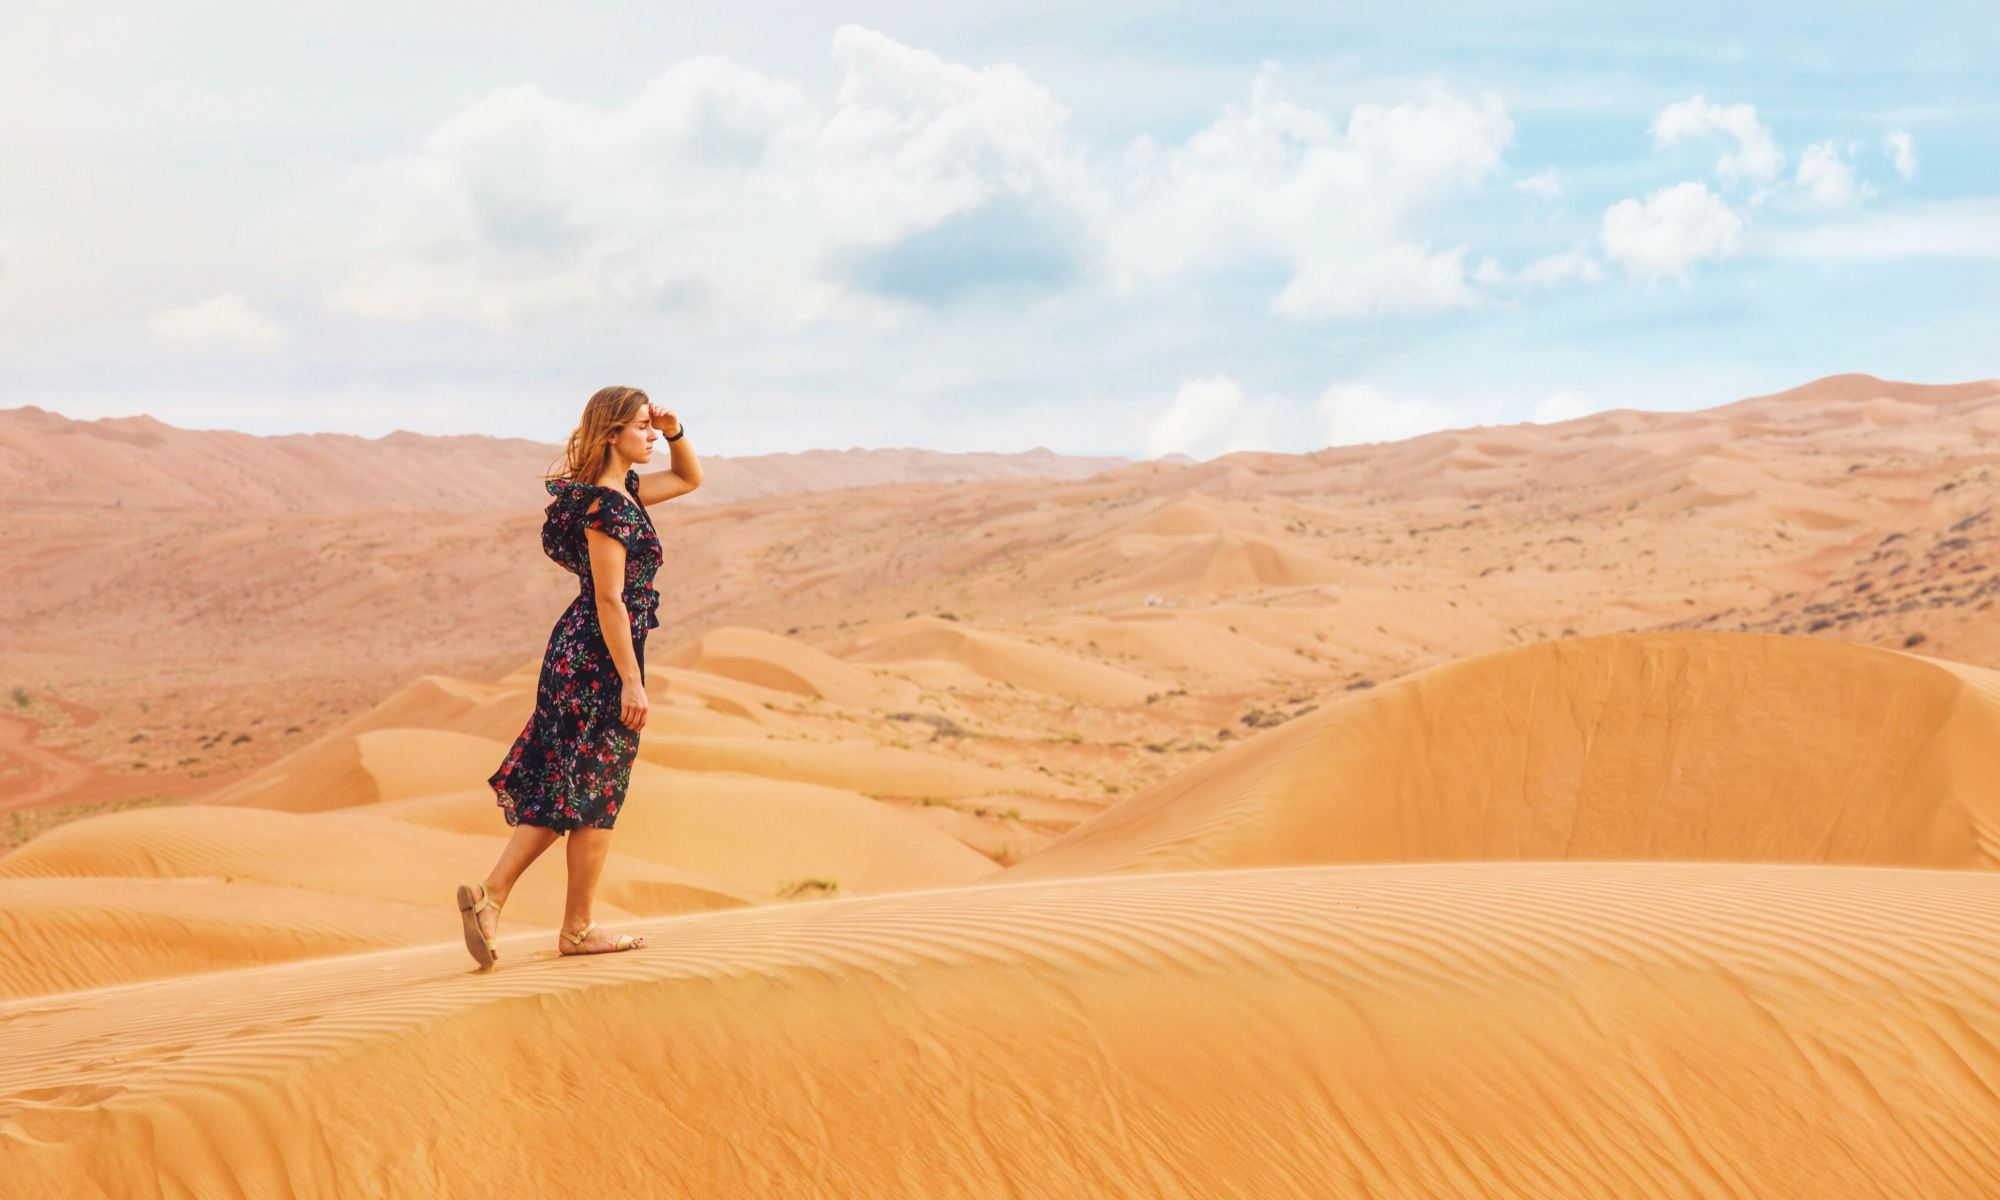 Young woman searching for answers while walking on sand dunes